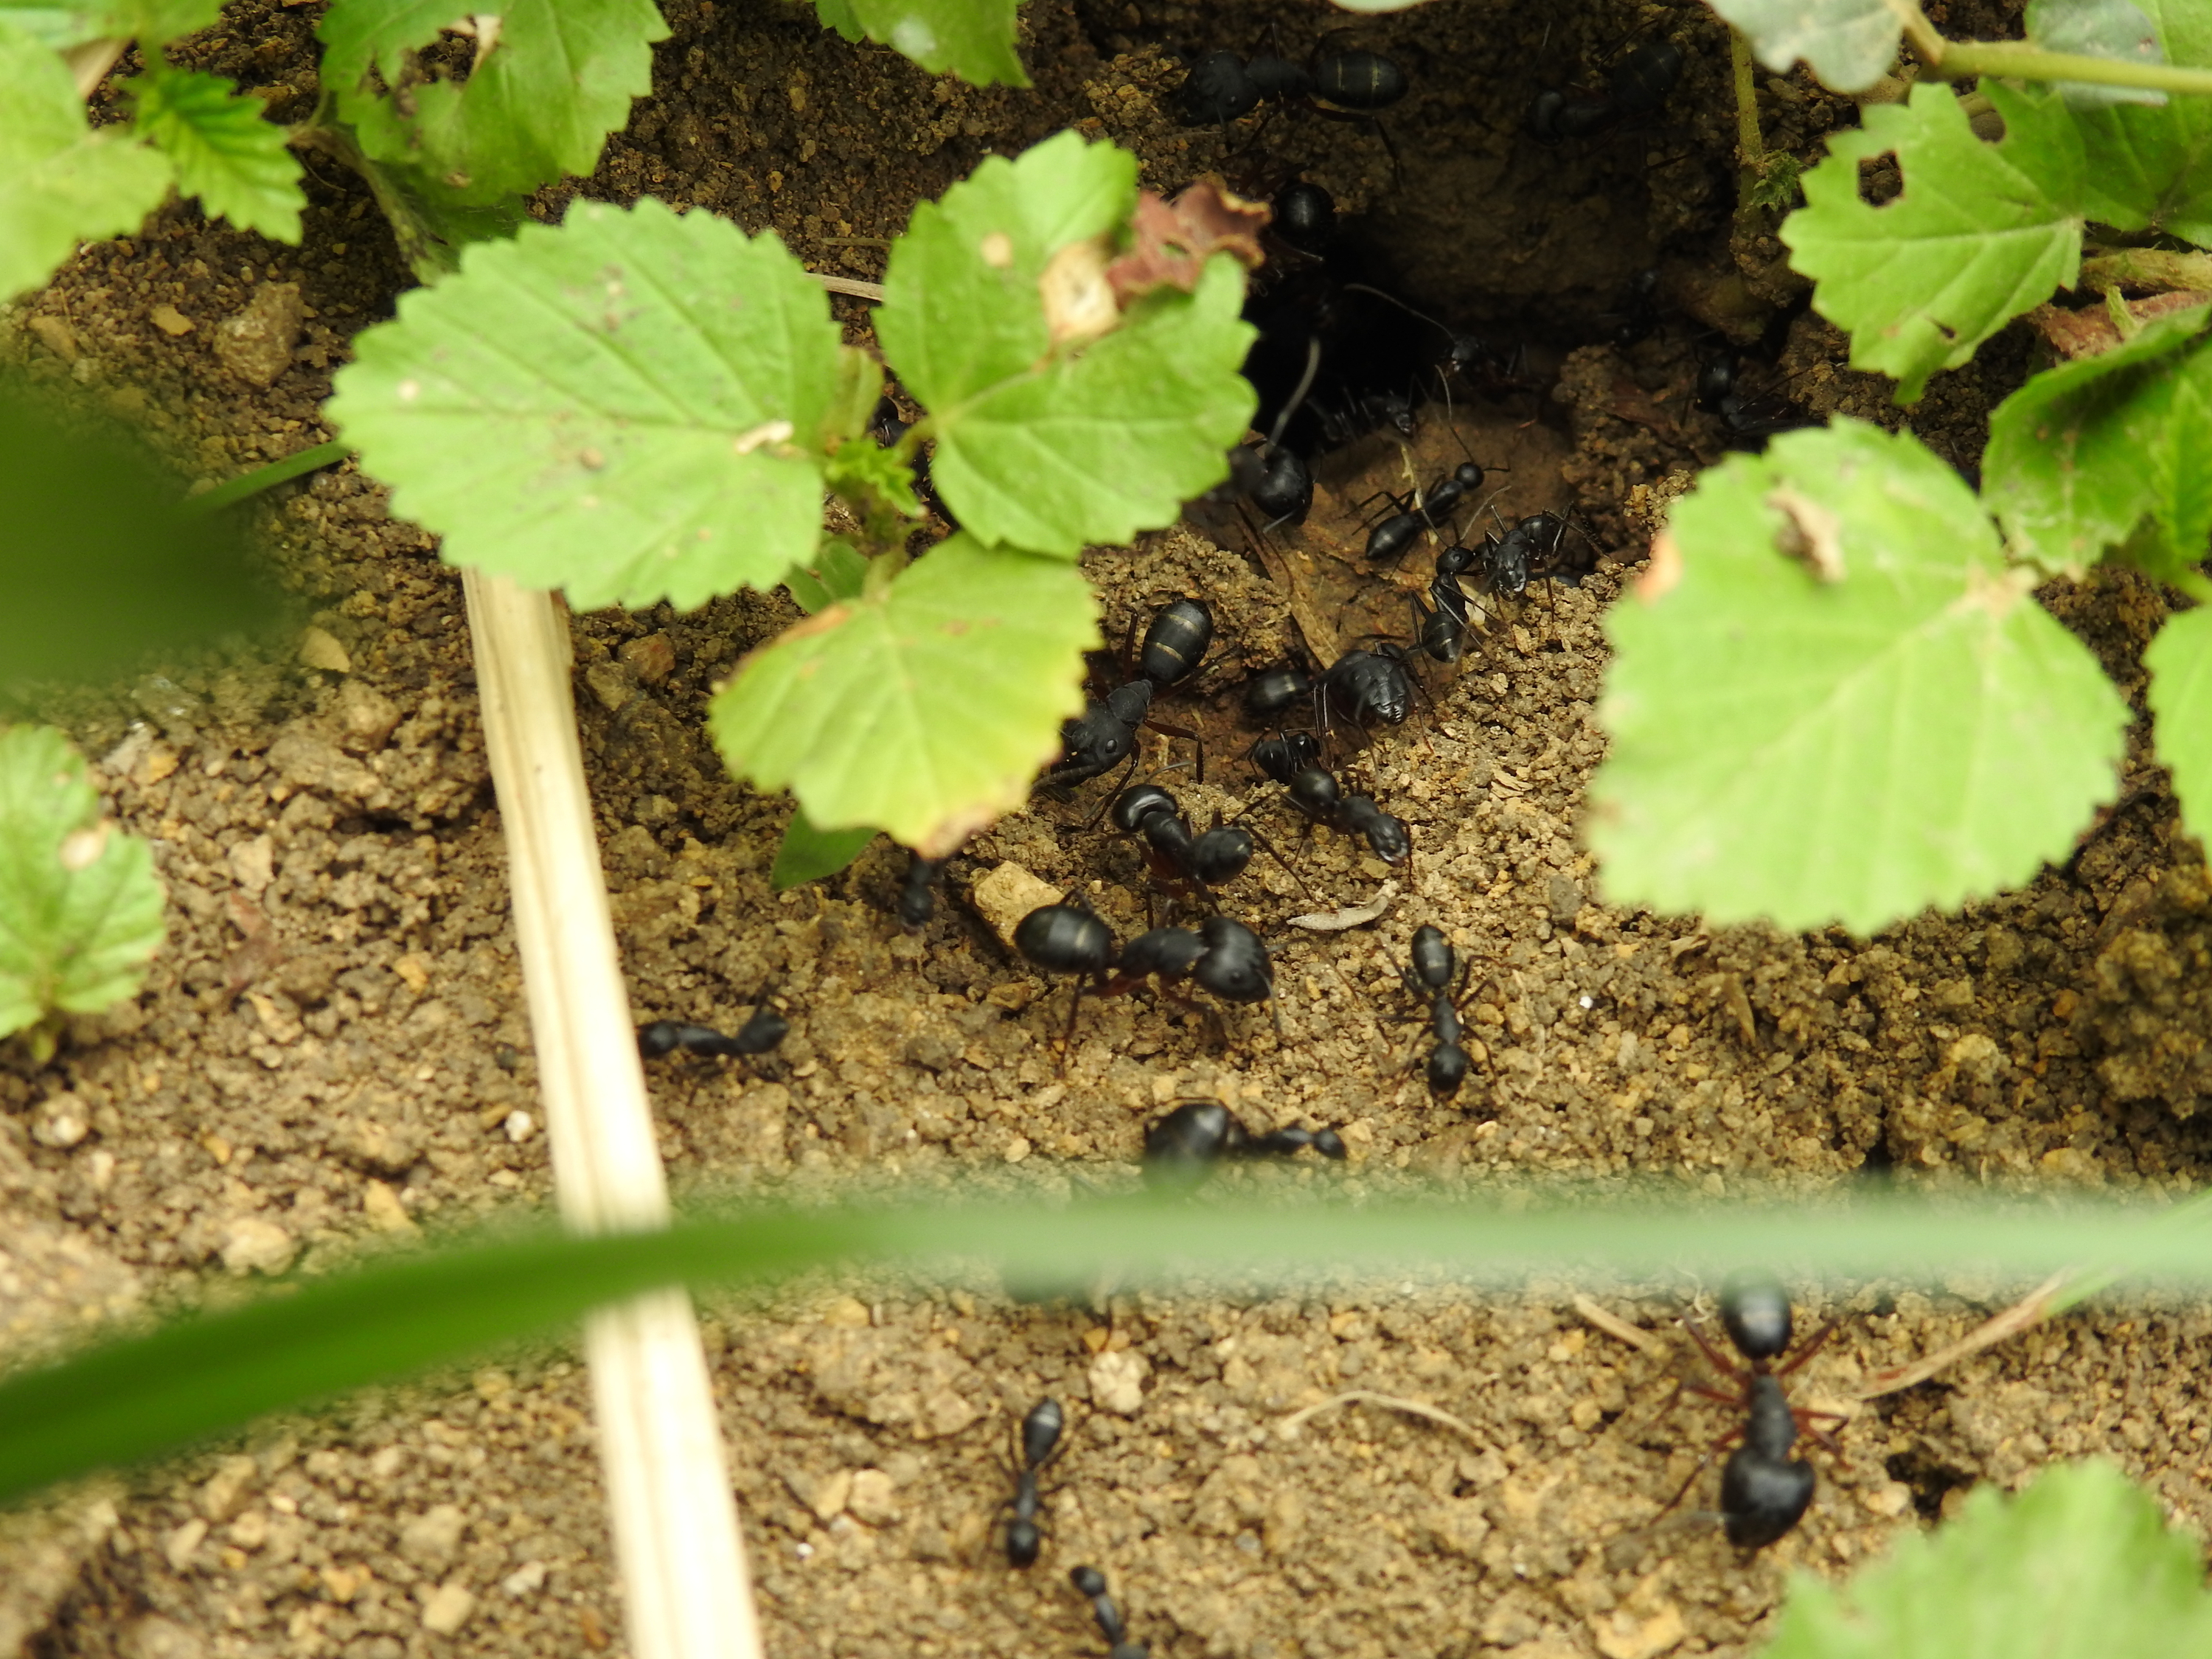 pests | nests | pests and their nests | gardening | garden | gardening tips | tips and tricks | tips and tricks for gardening